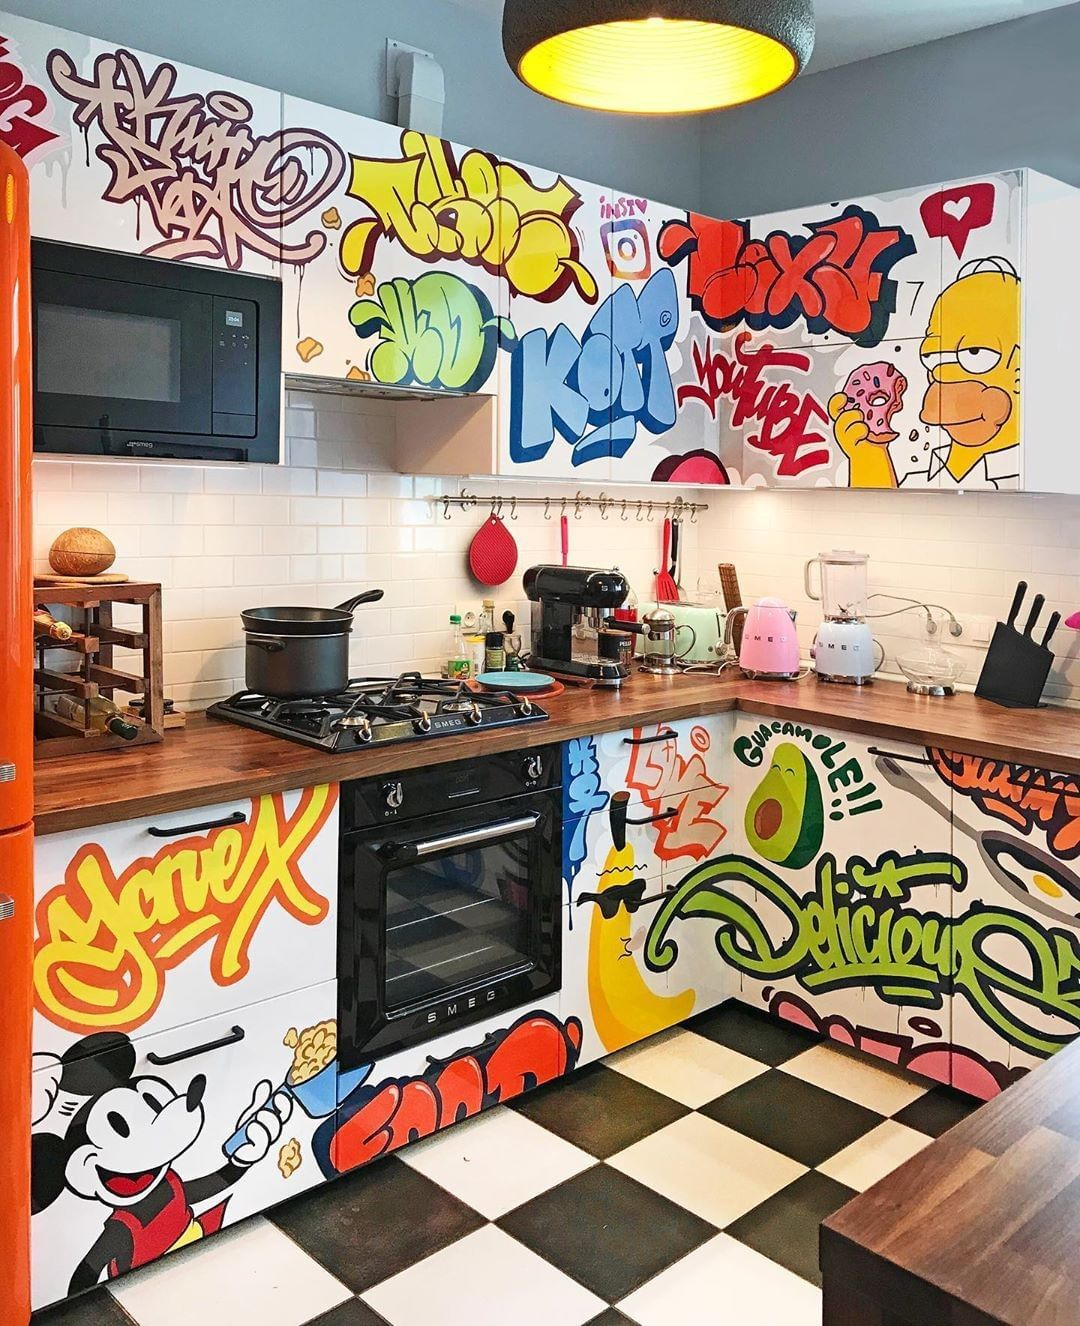 Streetviewlondon On Instagram This Is How It Looks Like When Graffiti Artists Spend Too Much Time At Home And In 2020 Graffiti Furniture Home Room Design Home Decor